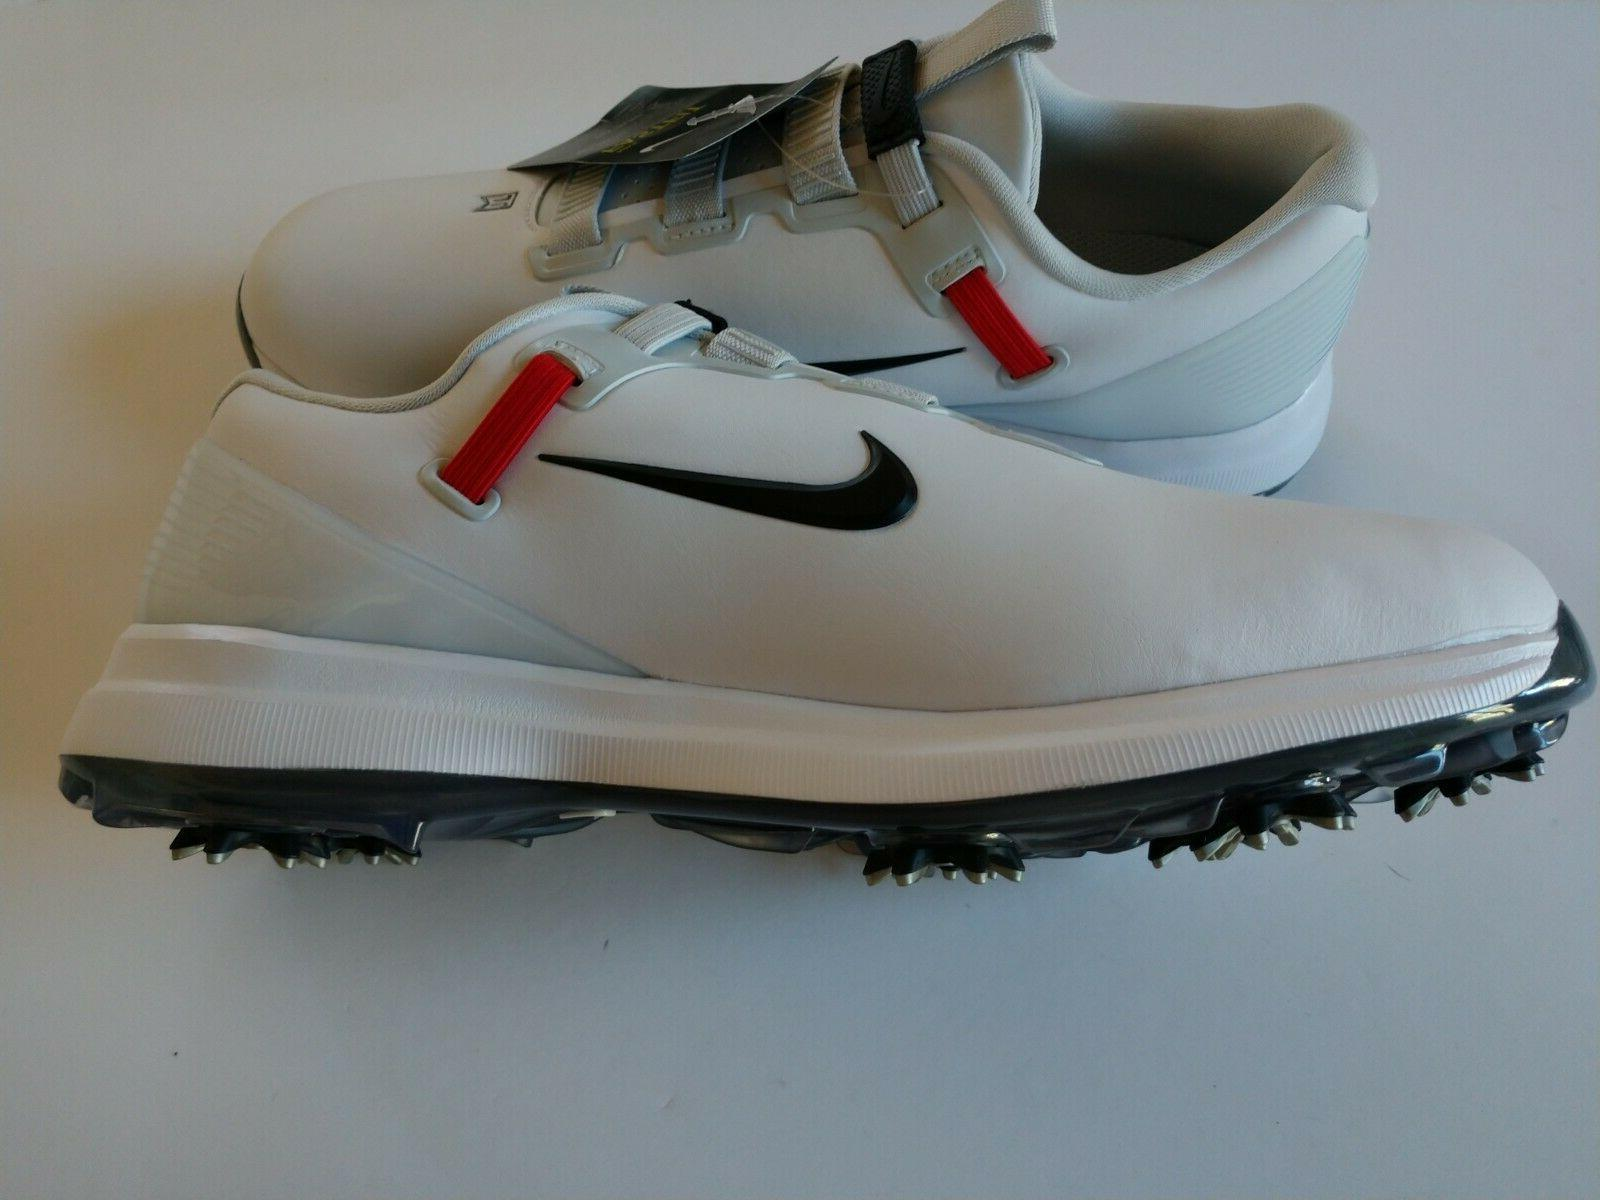 Nike Men's Woods White Black sz 11.5 CD6300-100